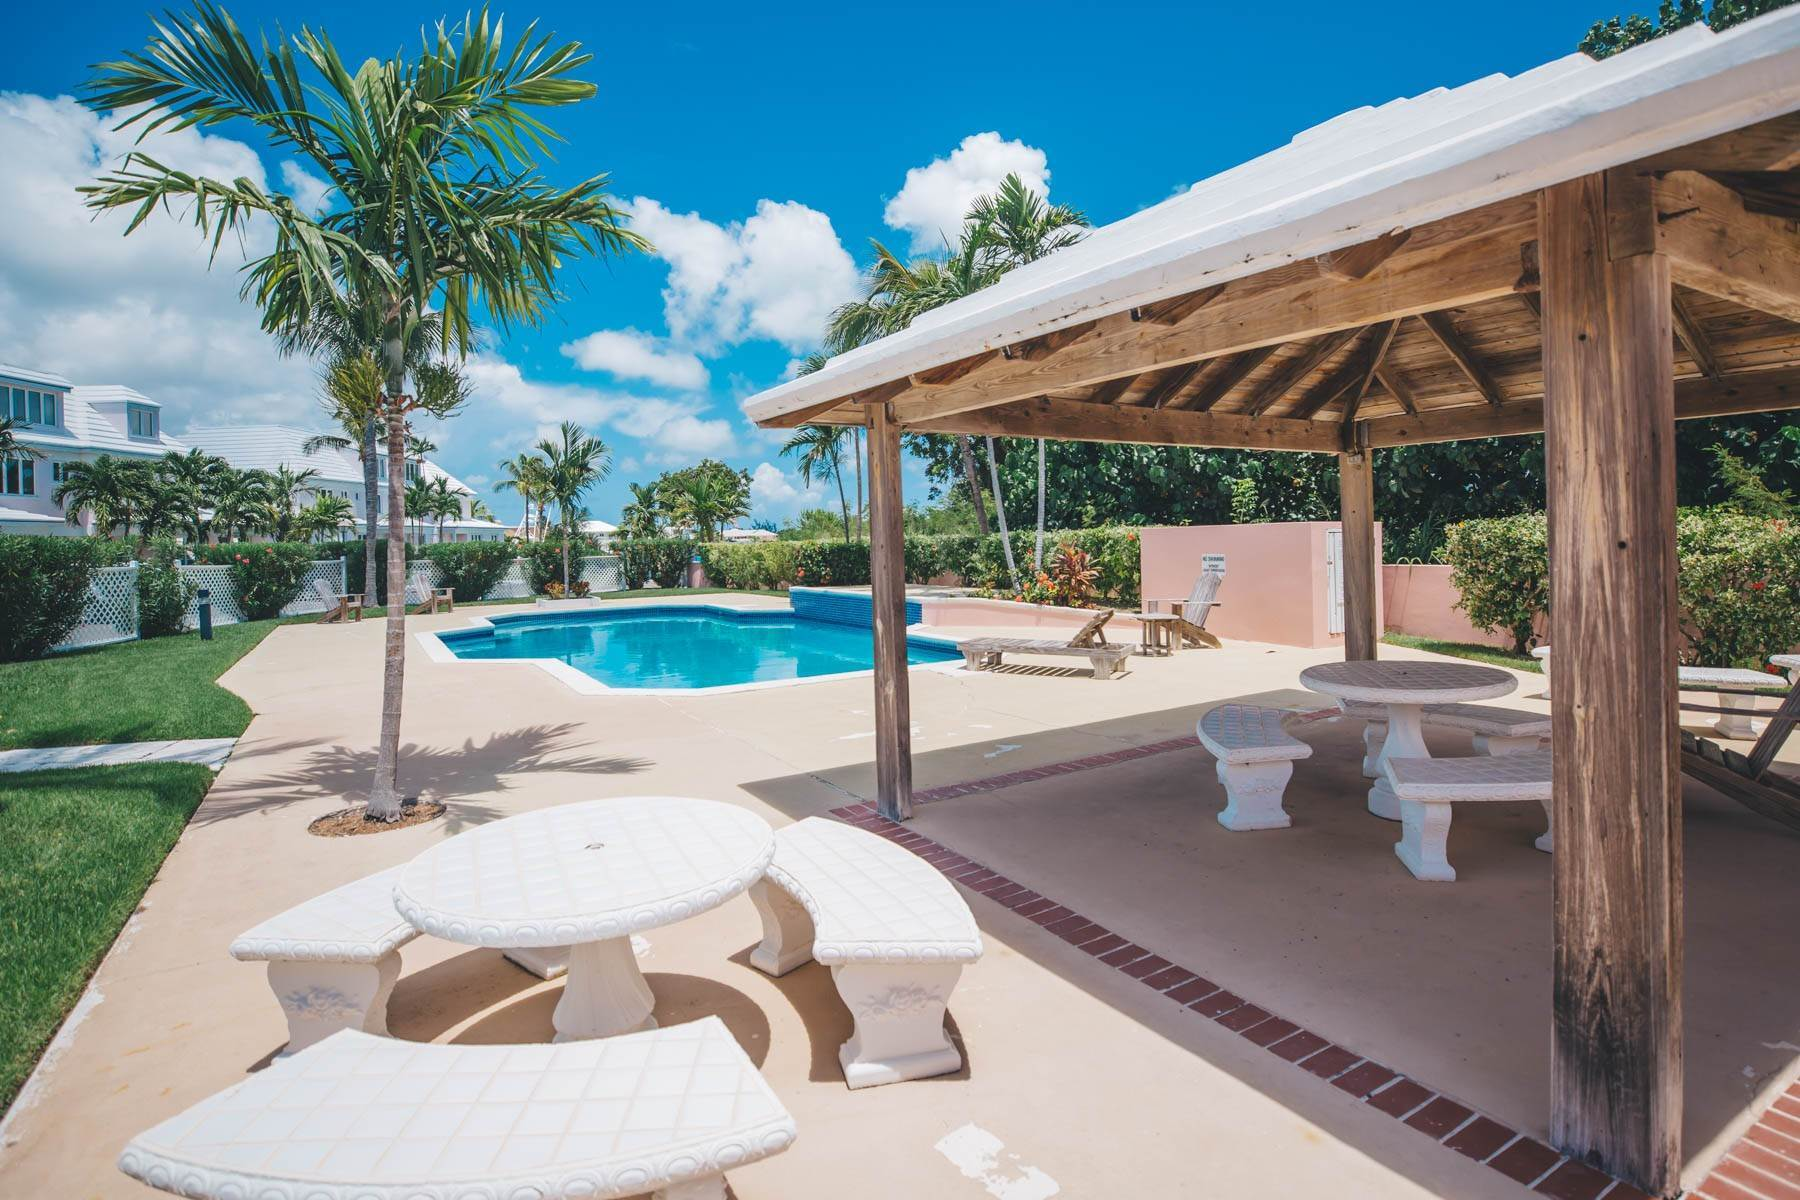 Co-op / Condo for Rent at #32 Seapointe, Exclusive Condo in Port New Providence - MLS 42138 St Andrews Beach, Yamacraw, Nassau And Paradise Island Bahamas